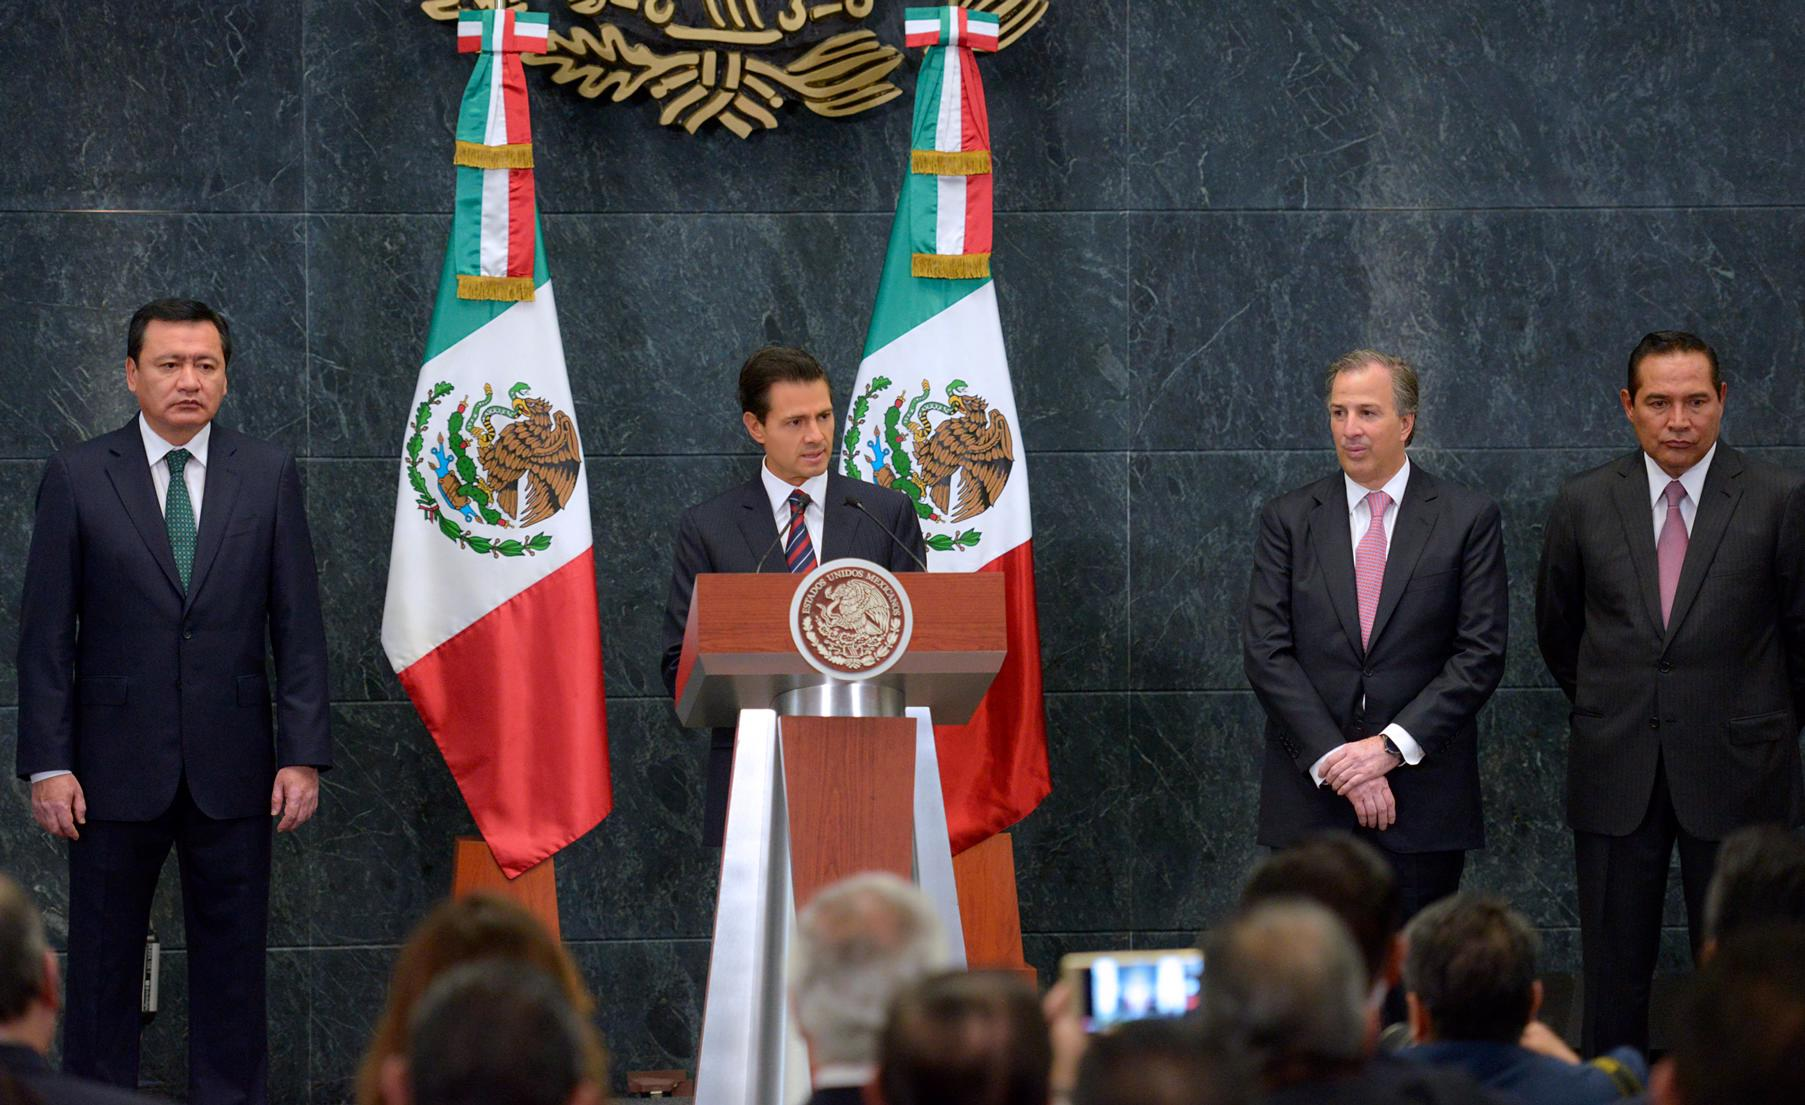 The president announced his acceptance of Luis Videgaray Caso's resignation as Secretary of Finance and Public Credit.